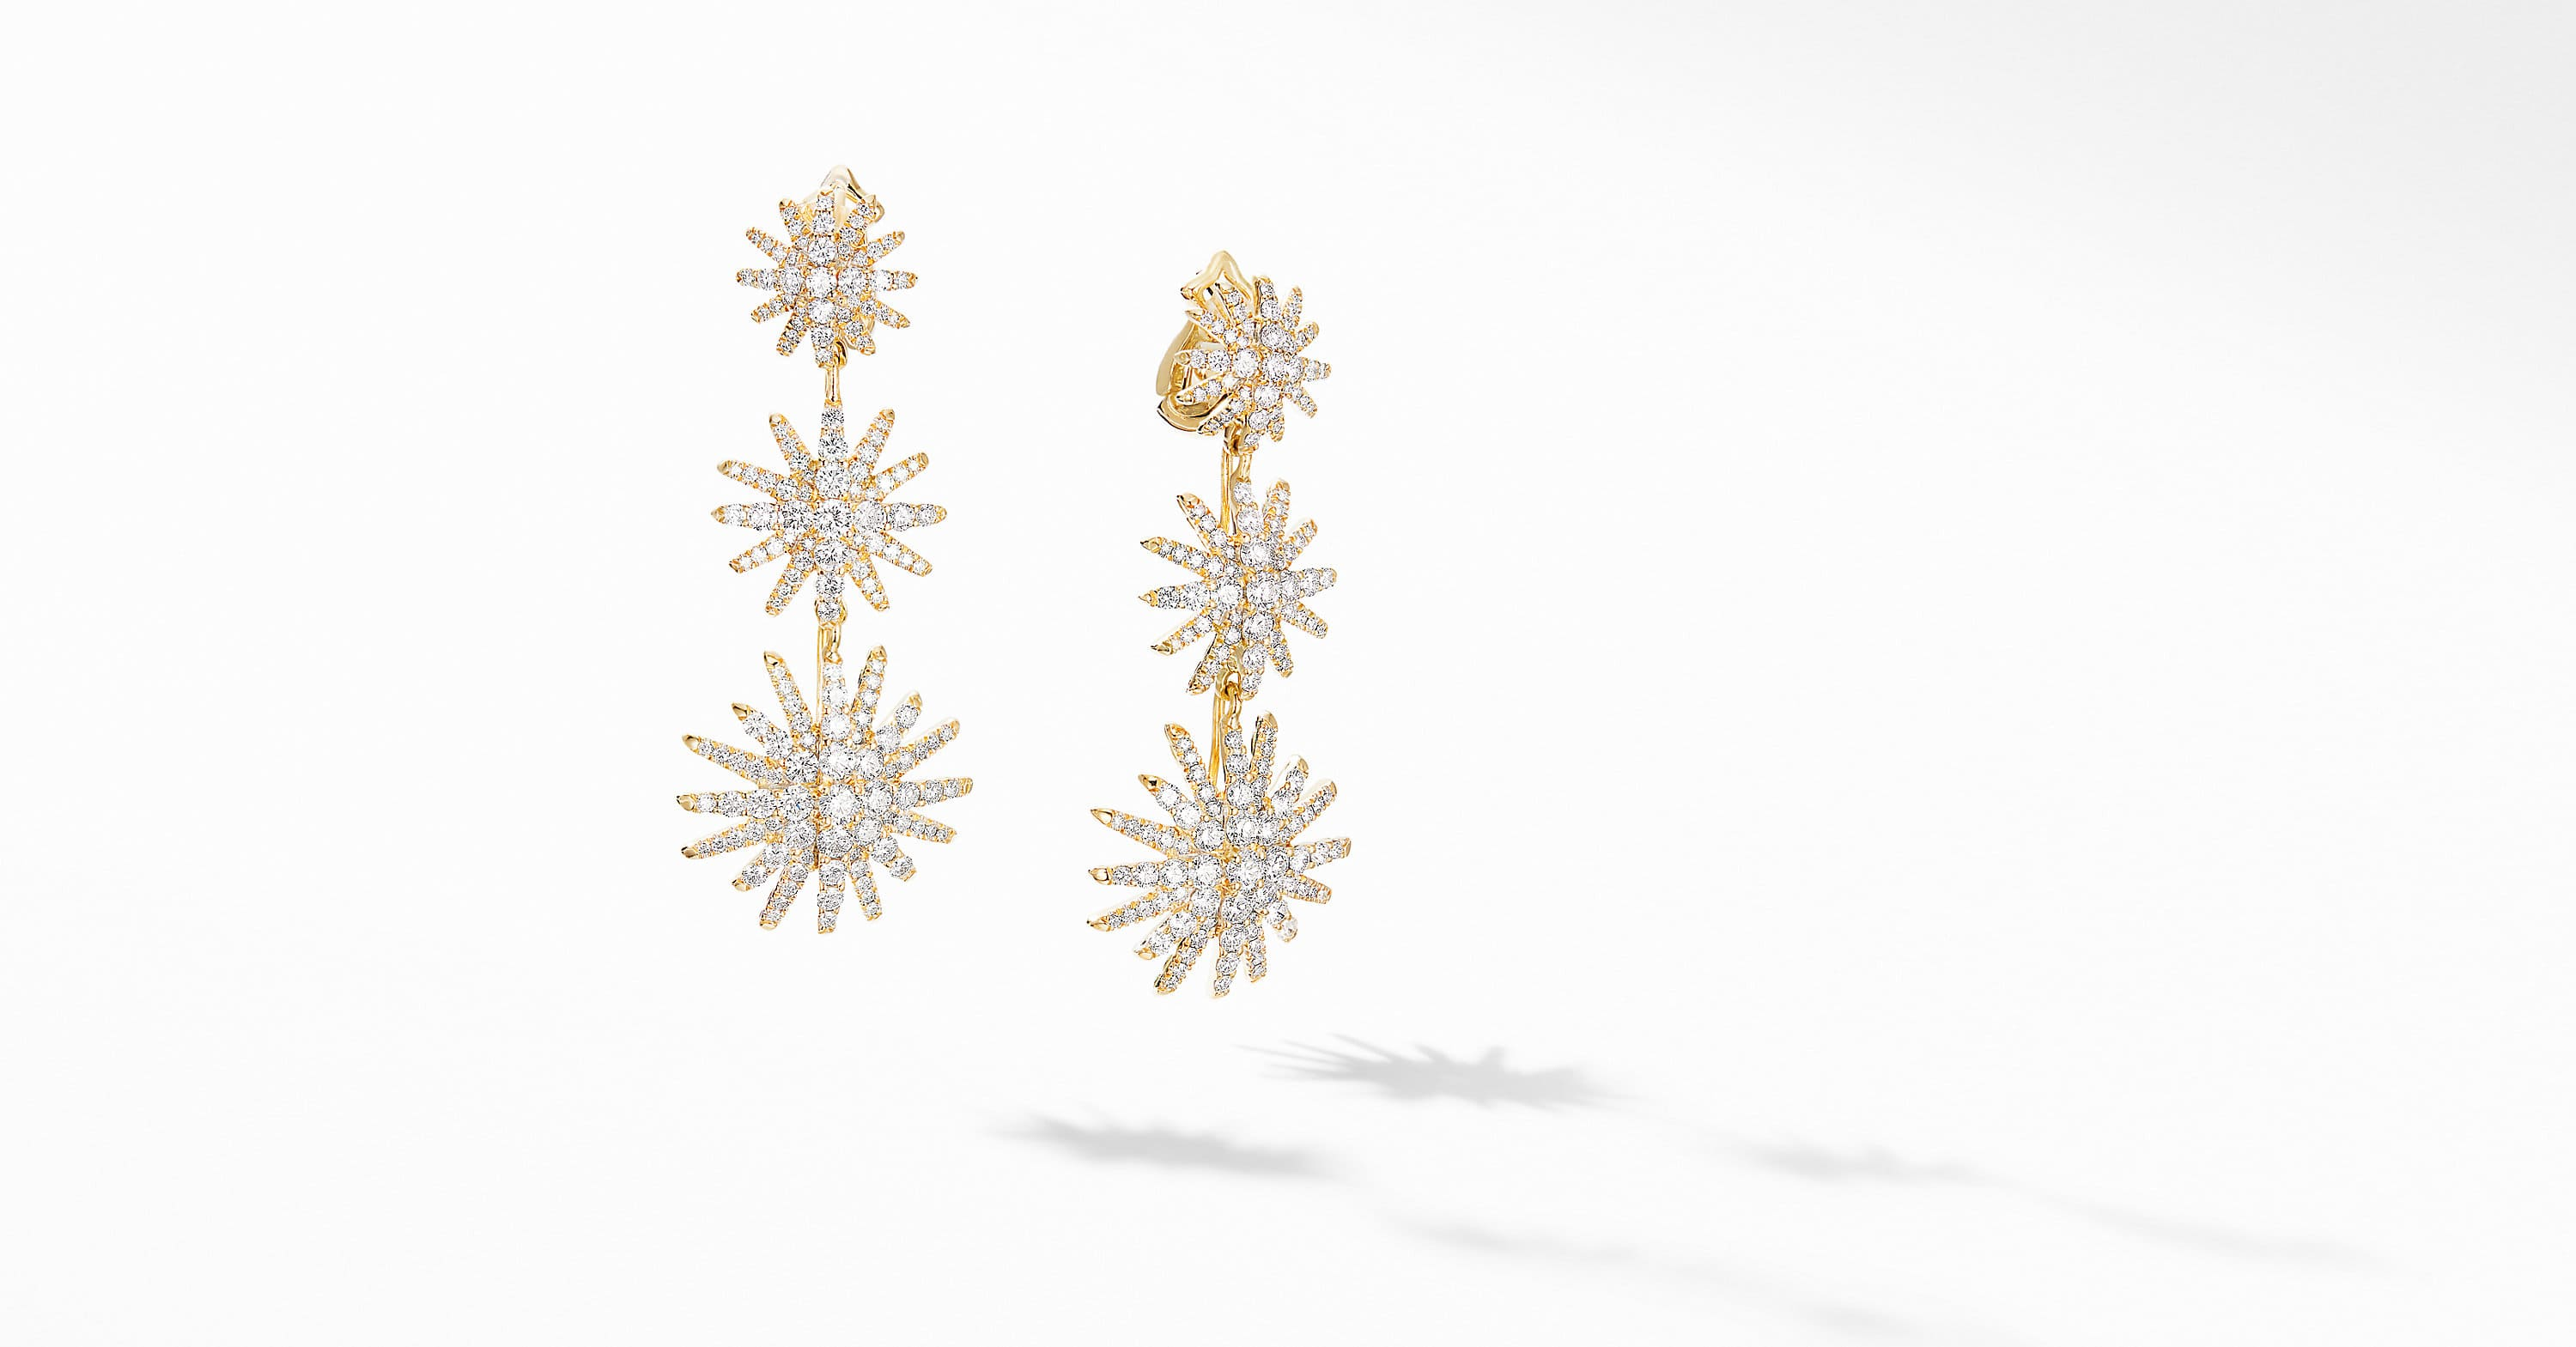 Dormeuses triple Starburst en or jaune 18 carats et diamants